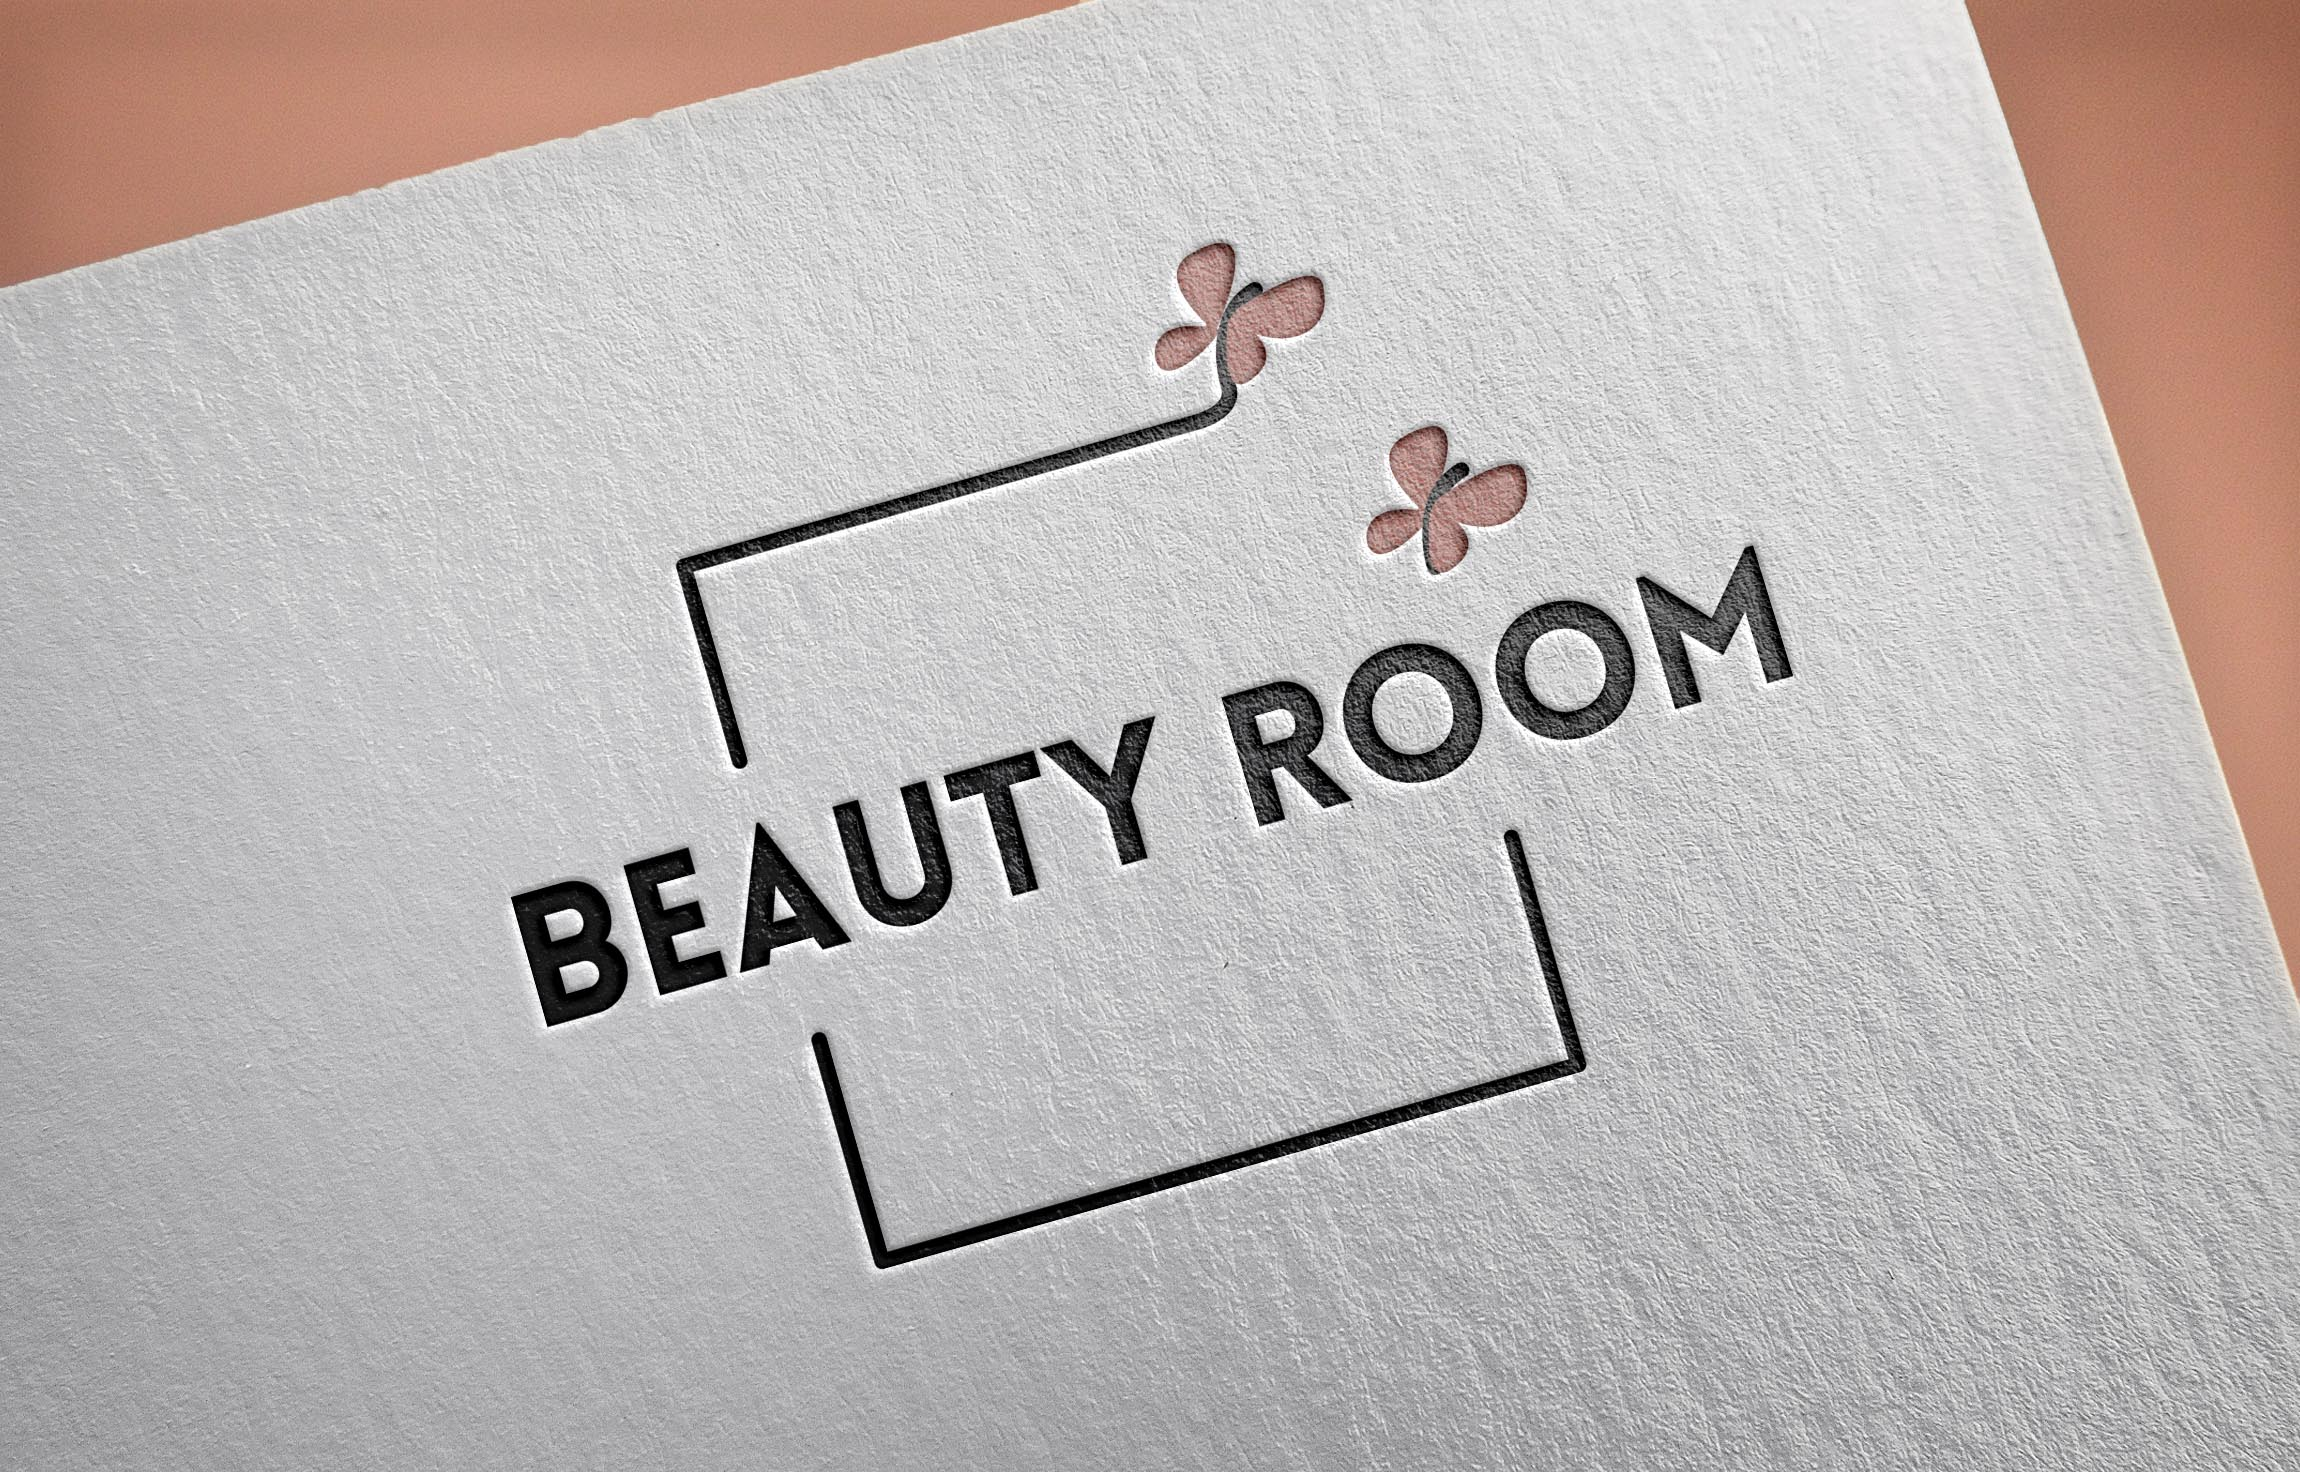 beautyroom logo